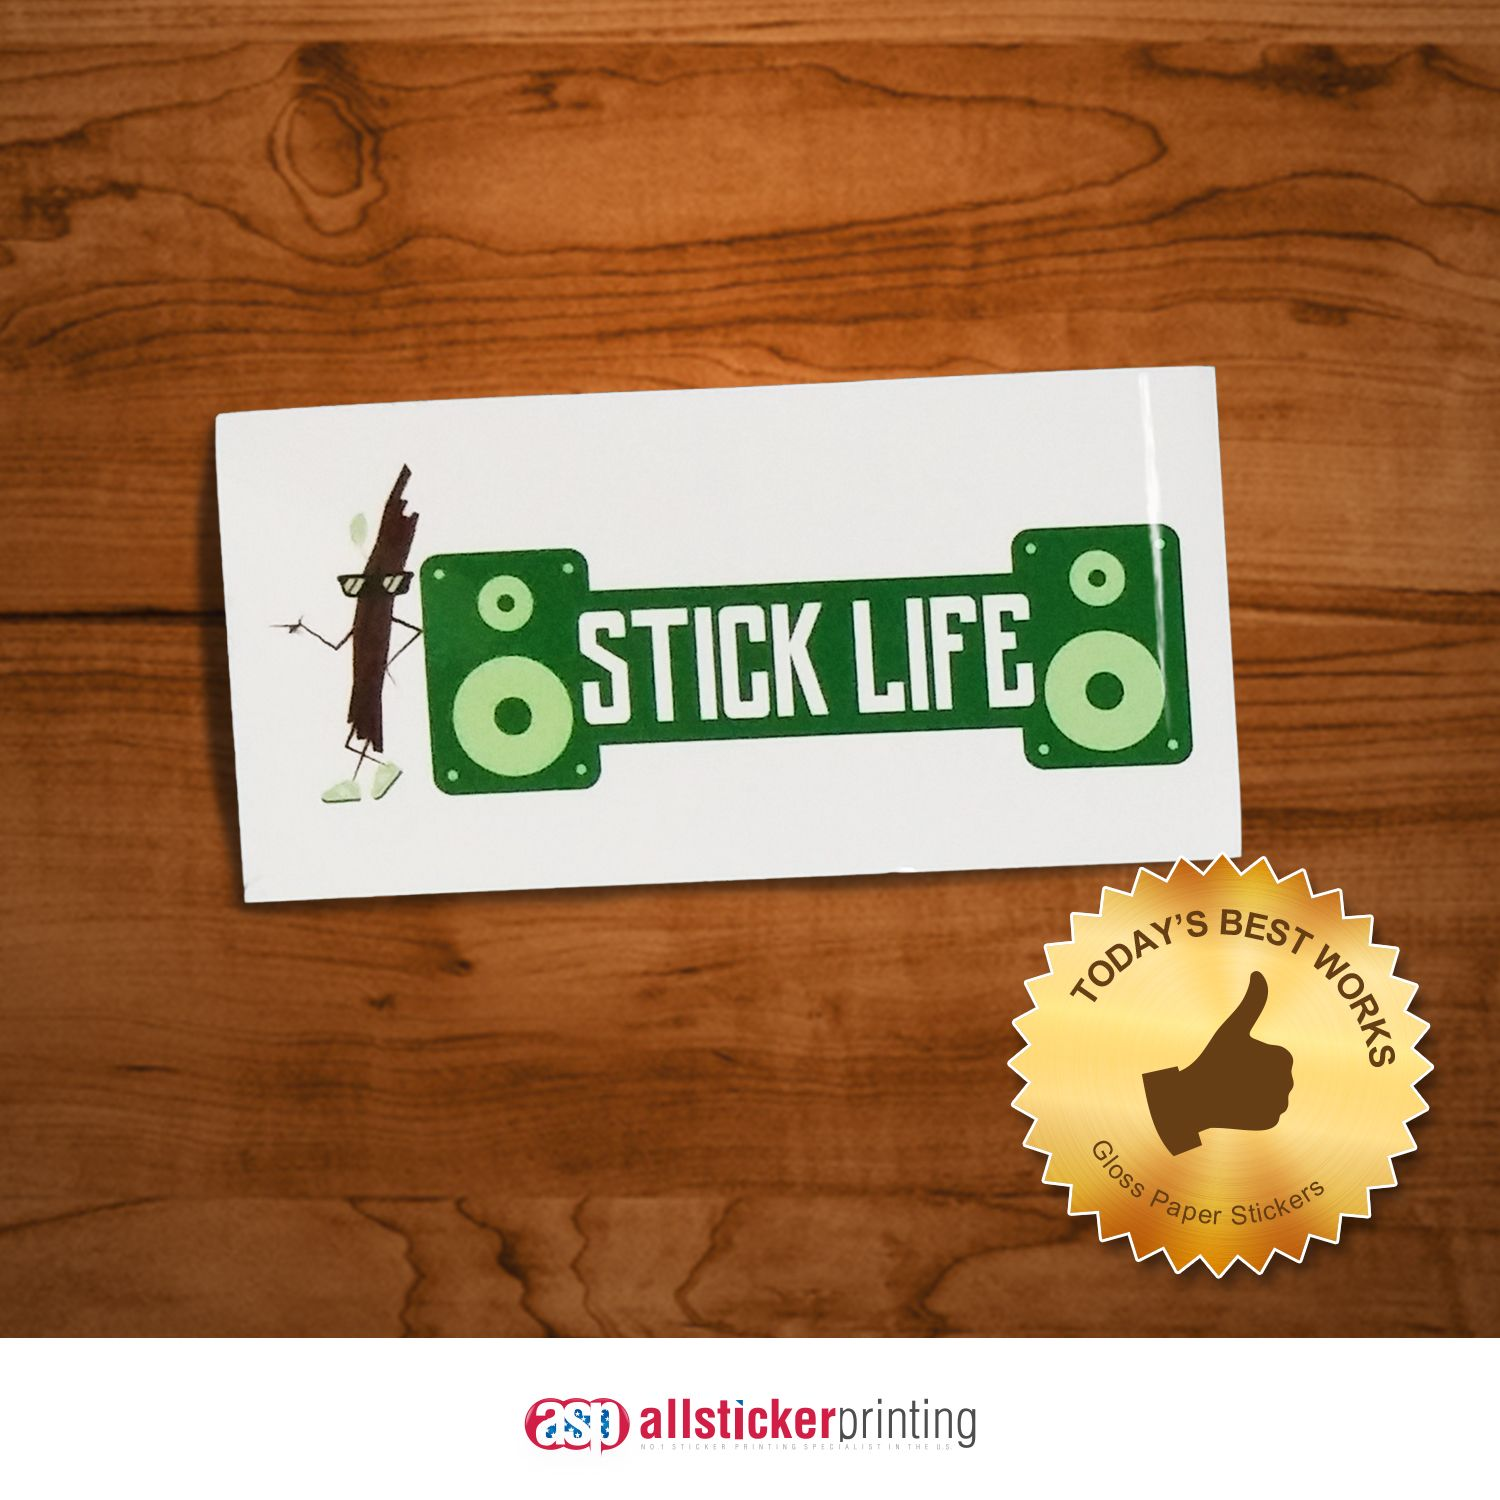 Efficient cost effective gloss paper stickers allstickerprinting sticker paper sticker printing